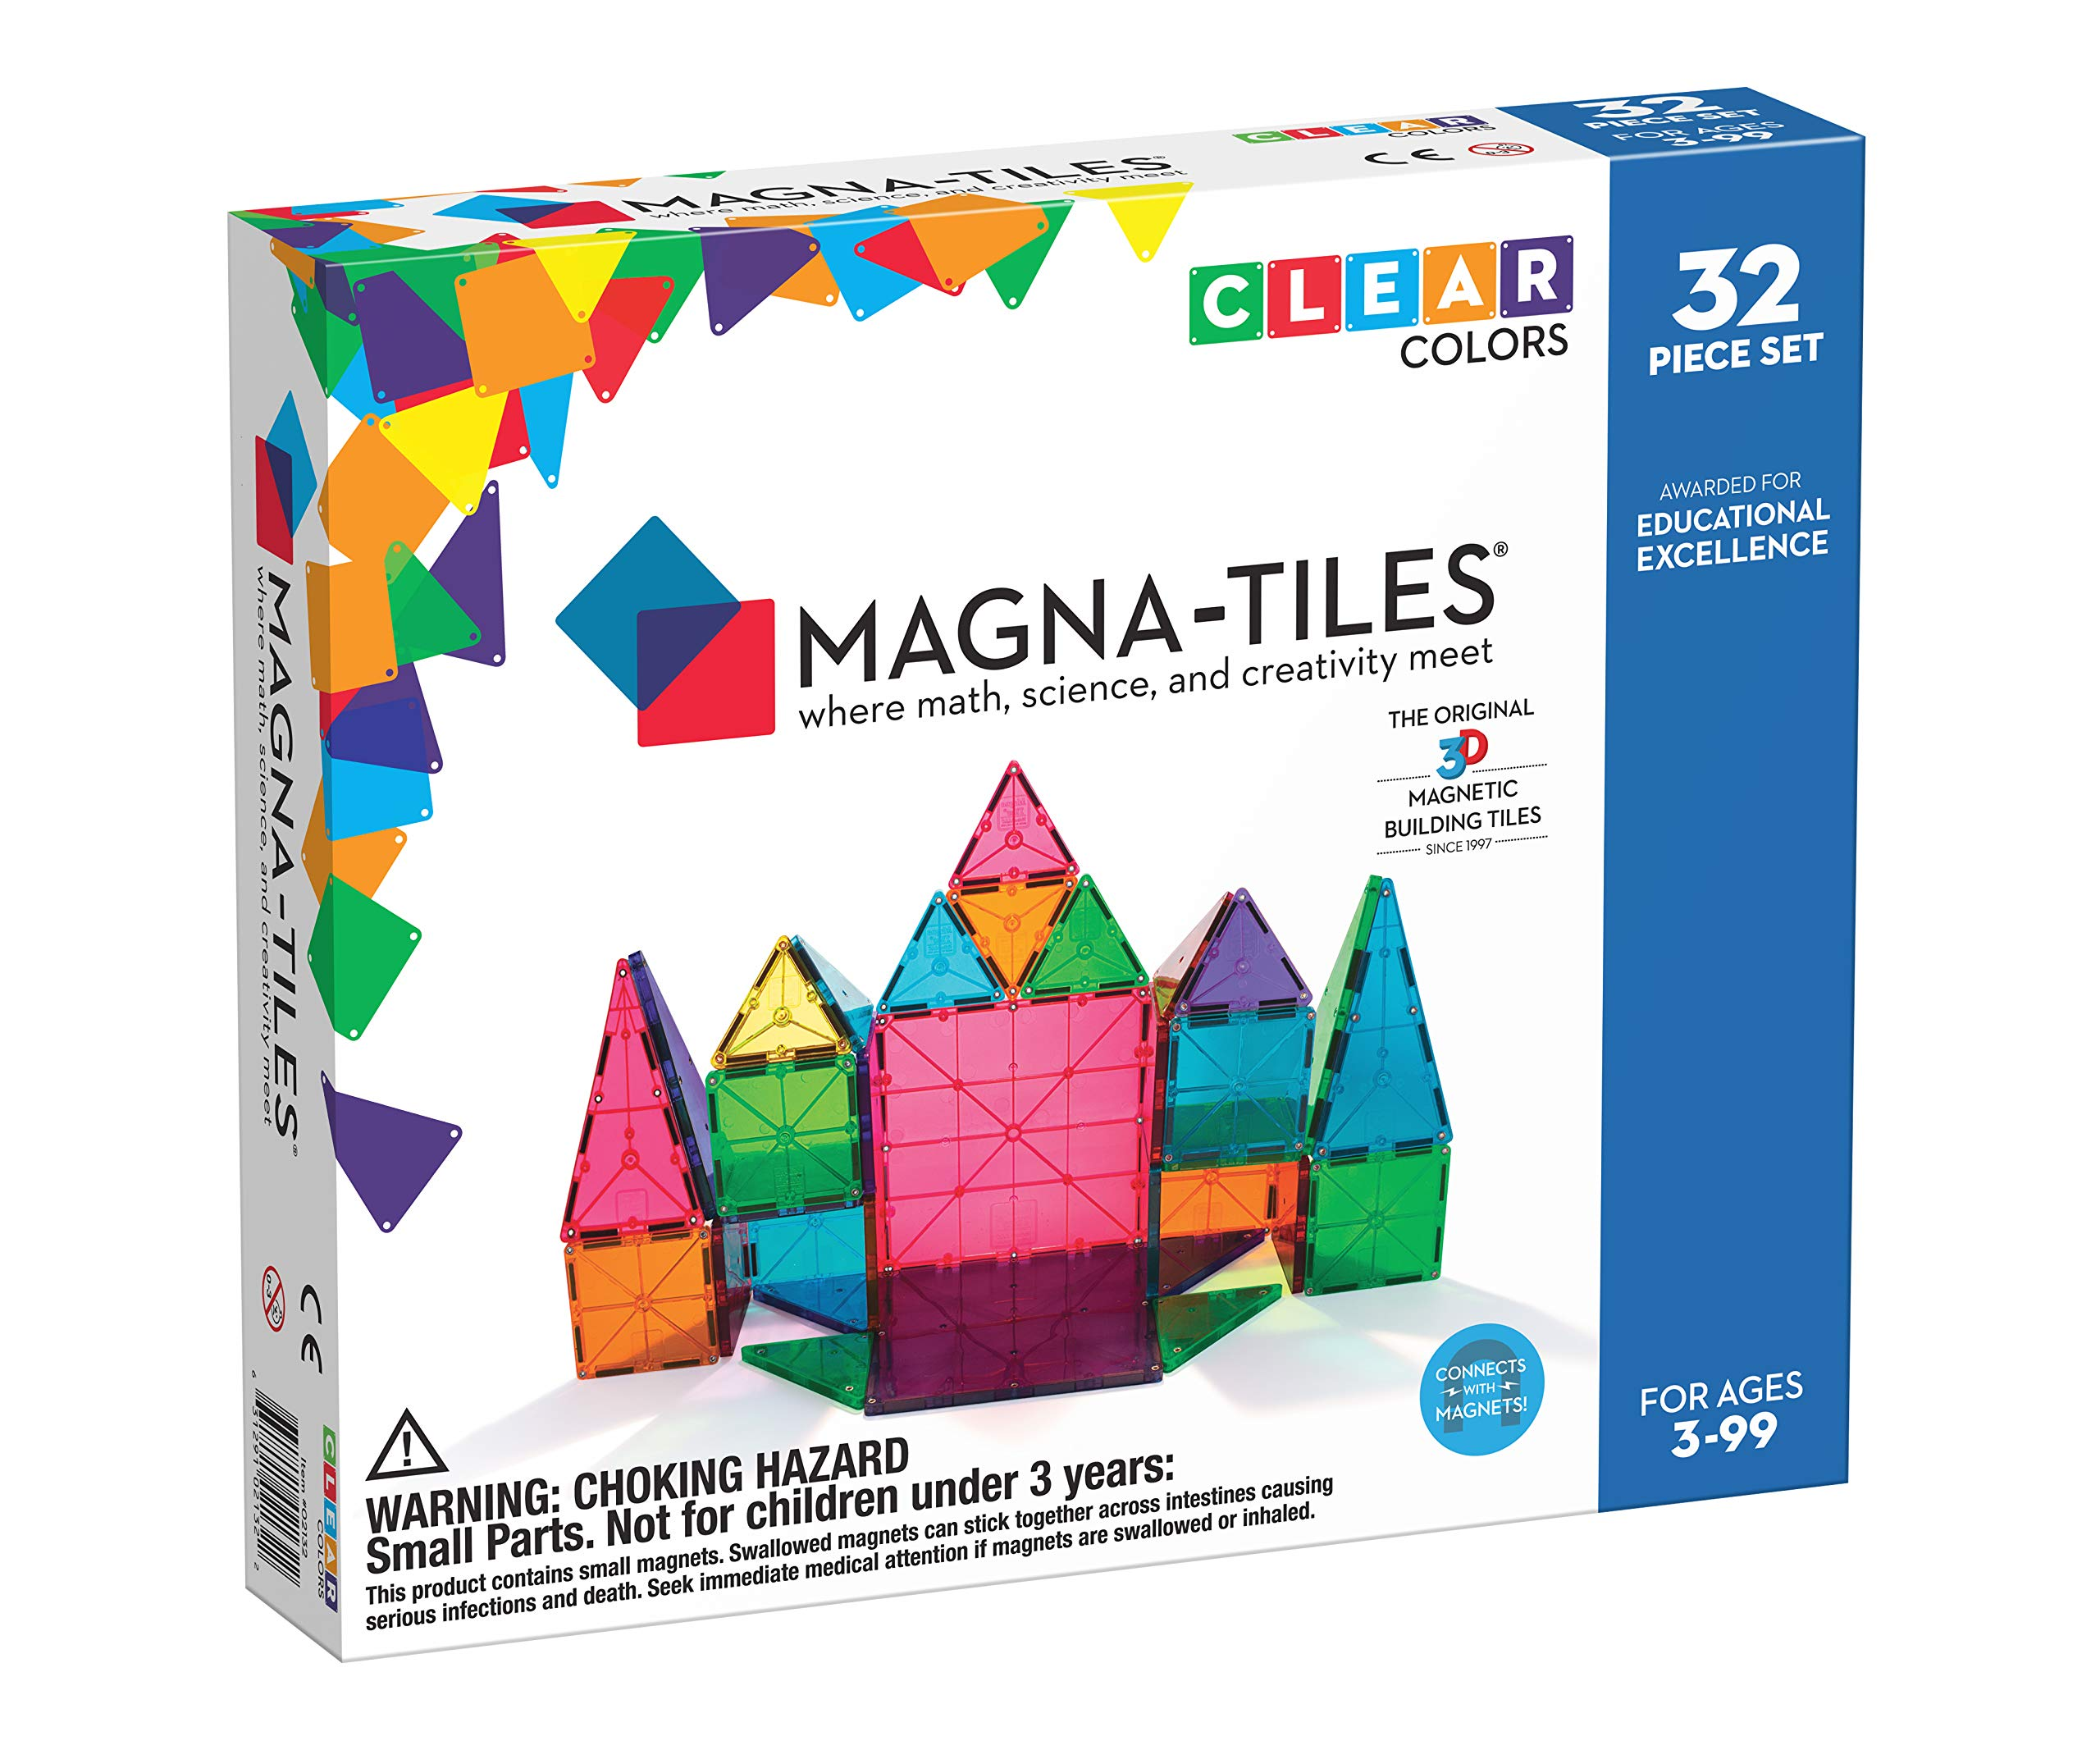 Magna-Tiles 32-Piece Clear Colors Set, The Original, Award-Winning Magnetic Building Tiles for Kids, Creativity and Educational Building Toys for Children, STEM Approved